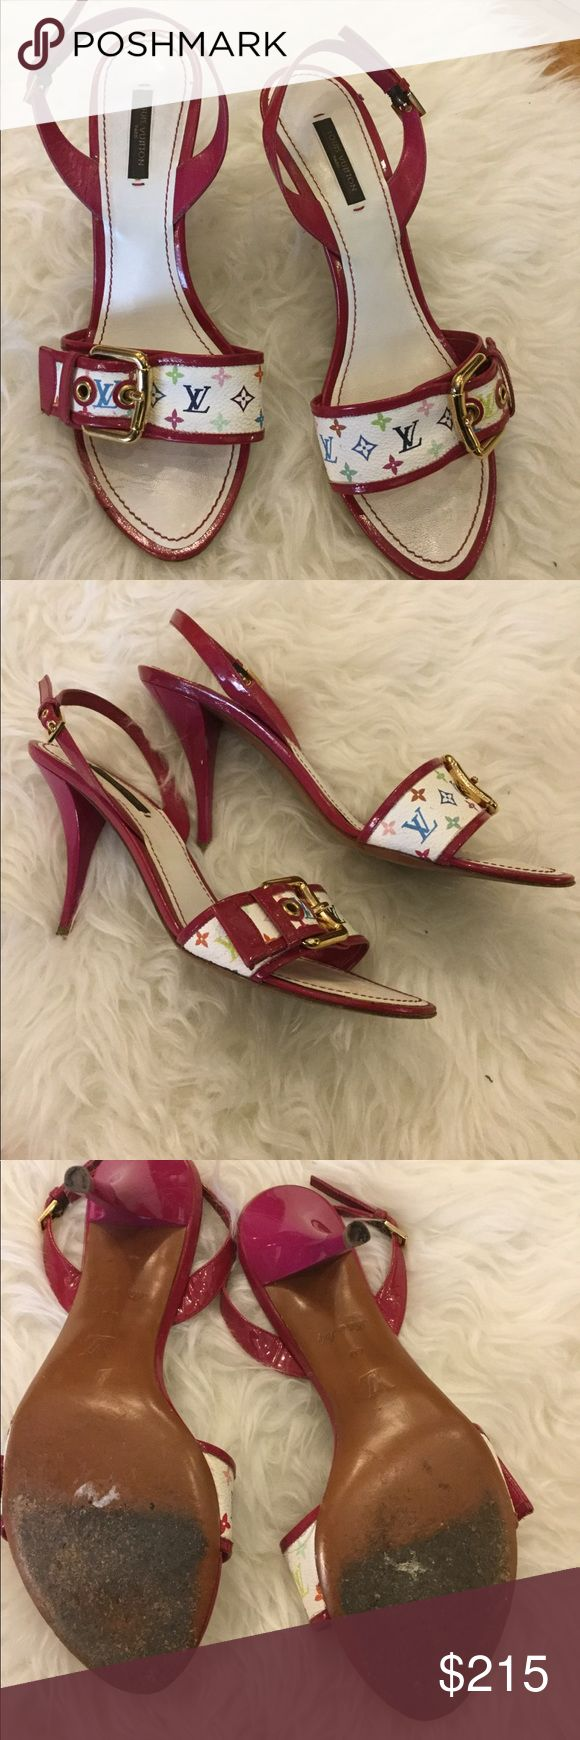 Louis Vuitton murakami heels Lv murakami heels with gold hardware, so many colors you can wear with these. Condition shown in pics! Size 40 Louis Vuitton Shoes Heels